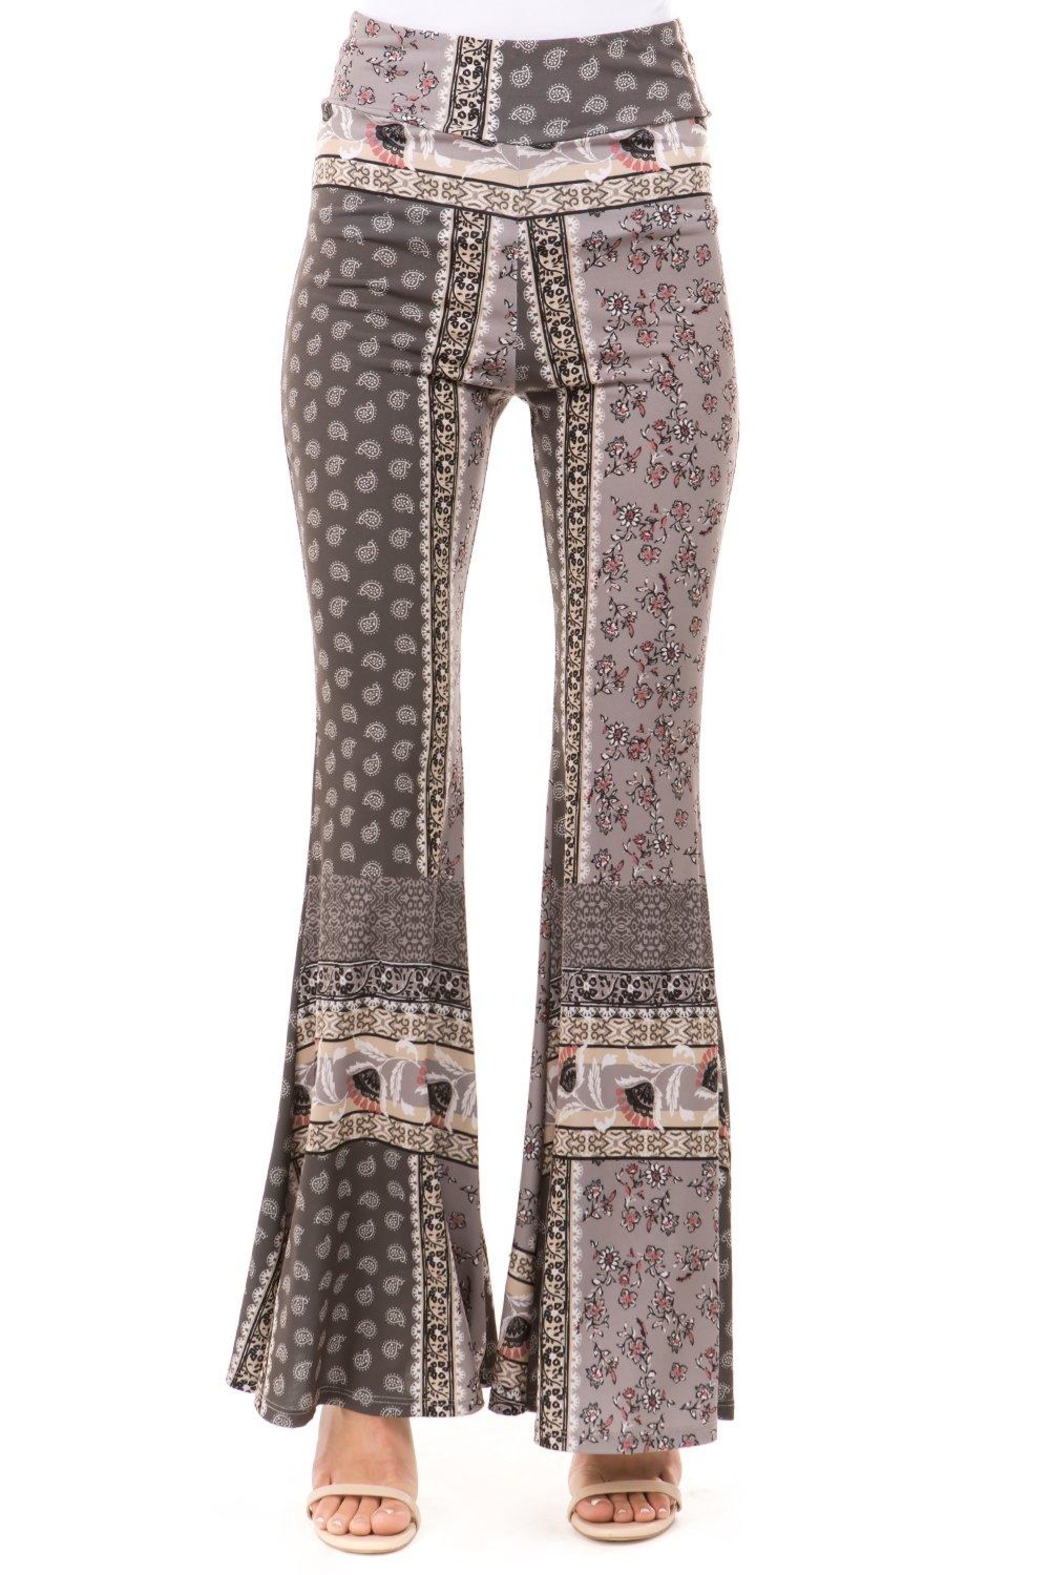 Vava by Joy Hahn Tallulah Printed Pants - Front Full Image